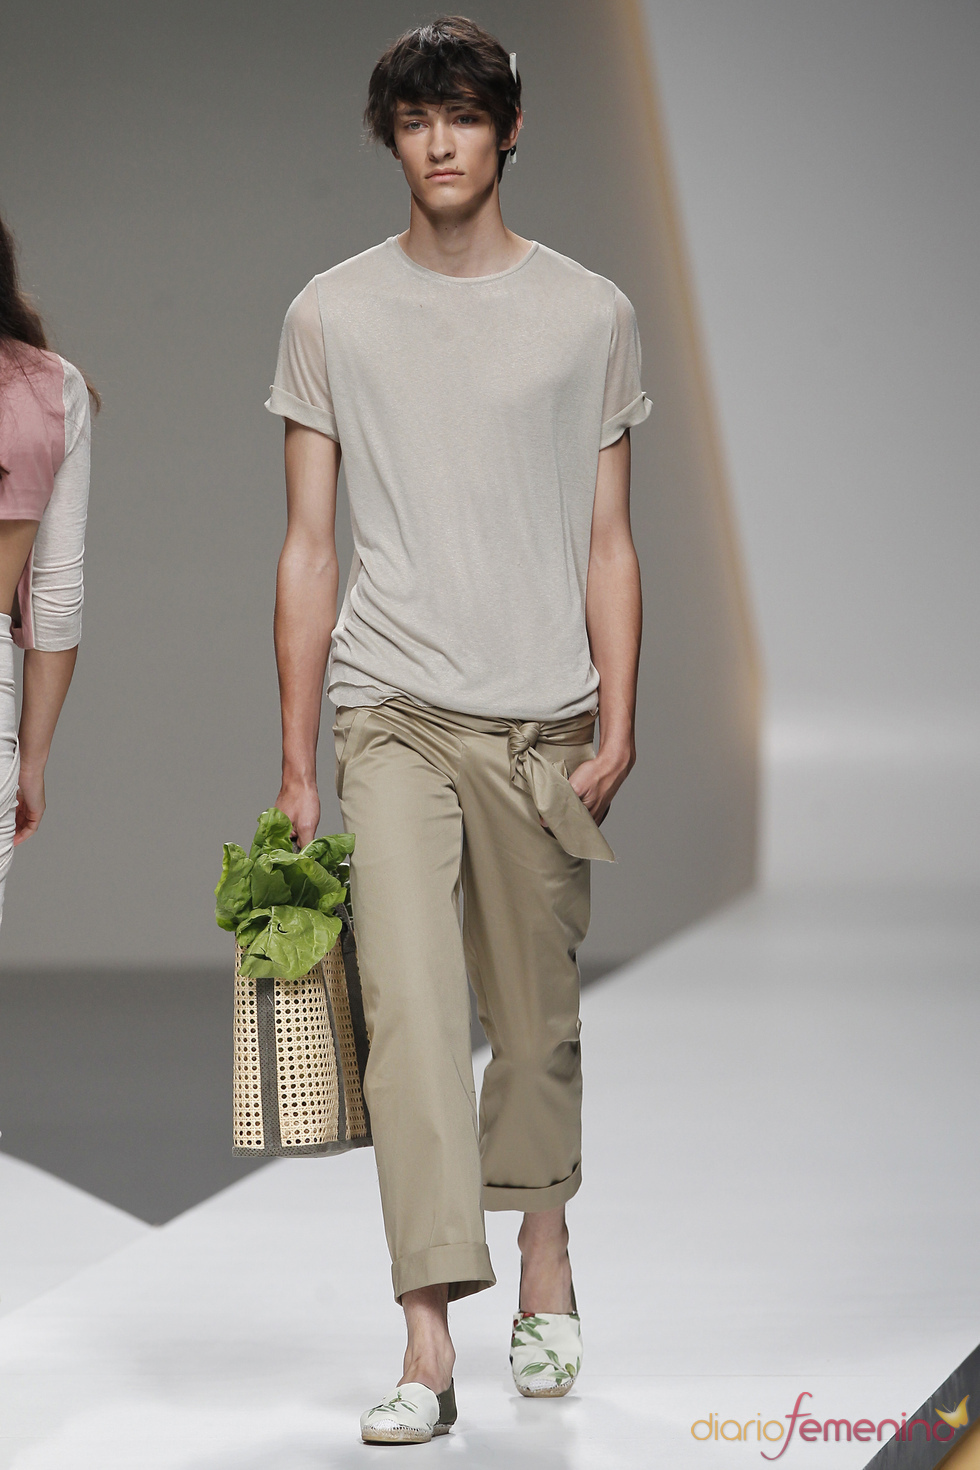 Bohento, muy natural, en la Fashion Week de Madrid